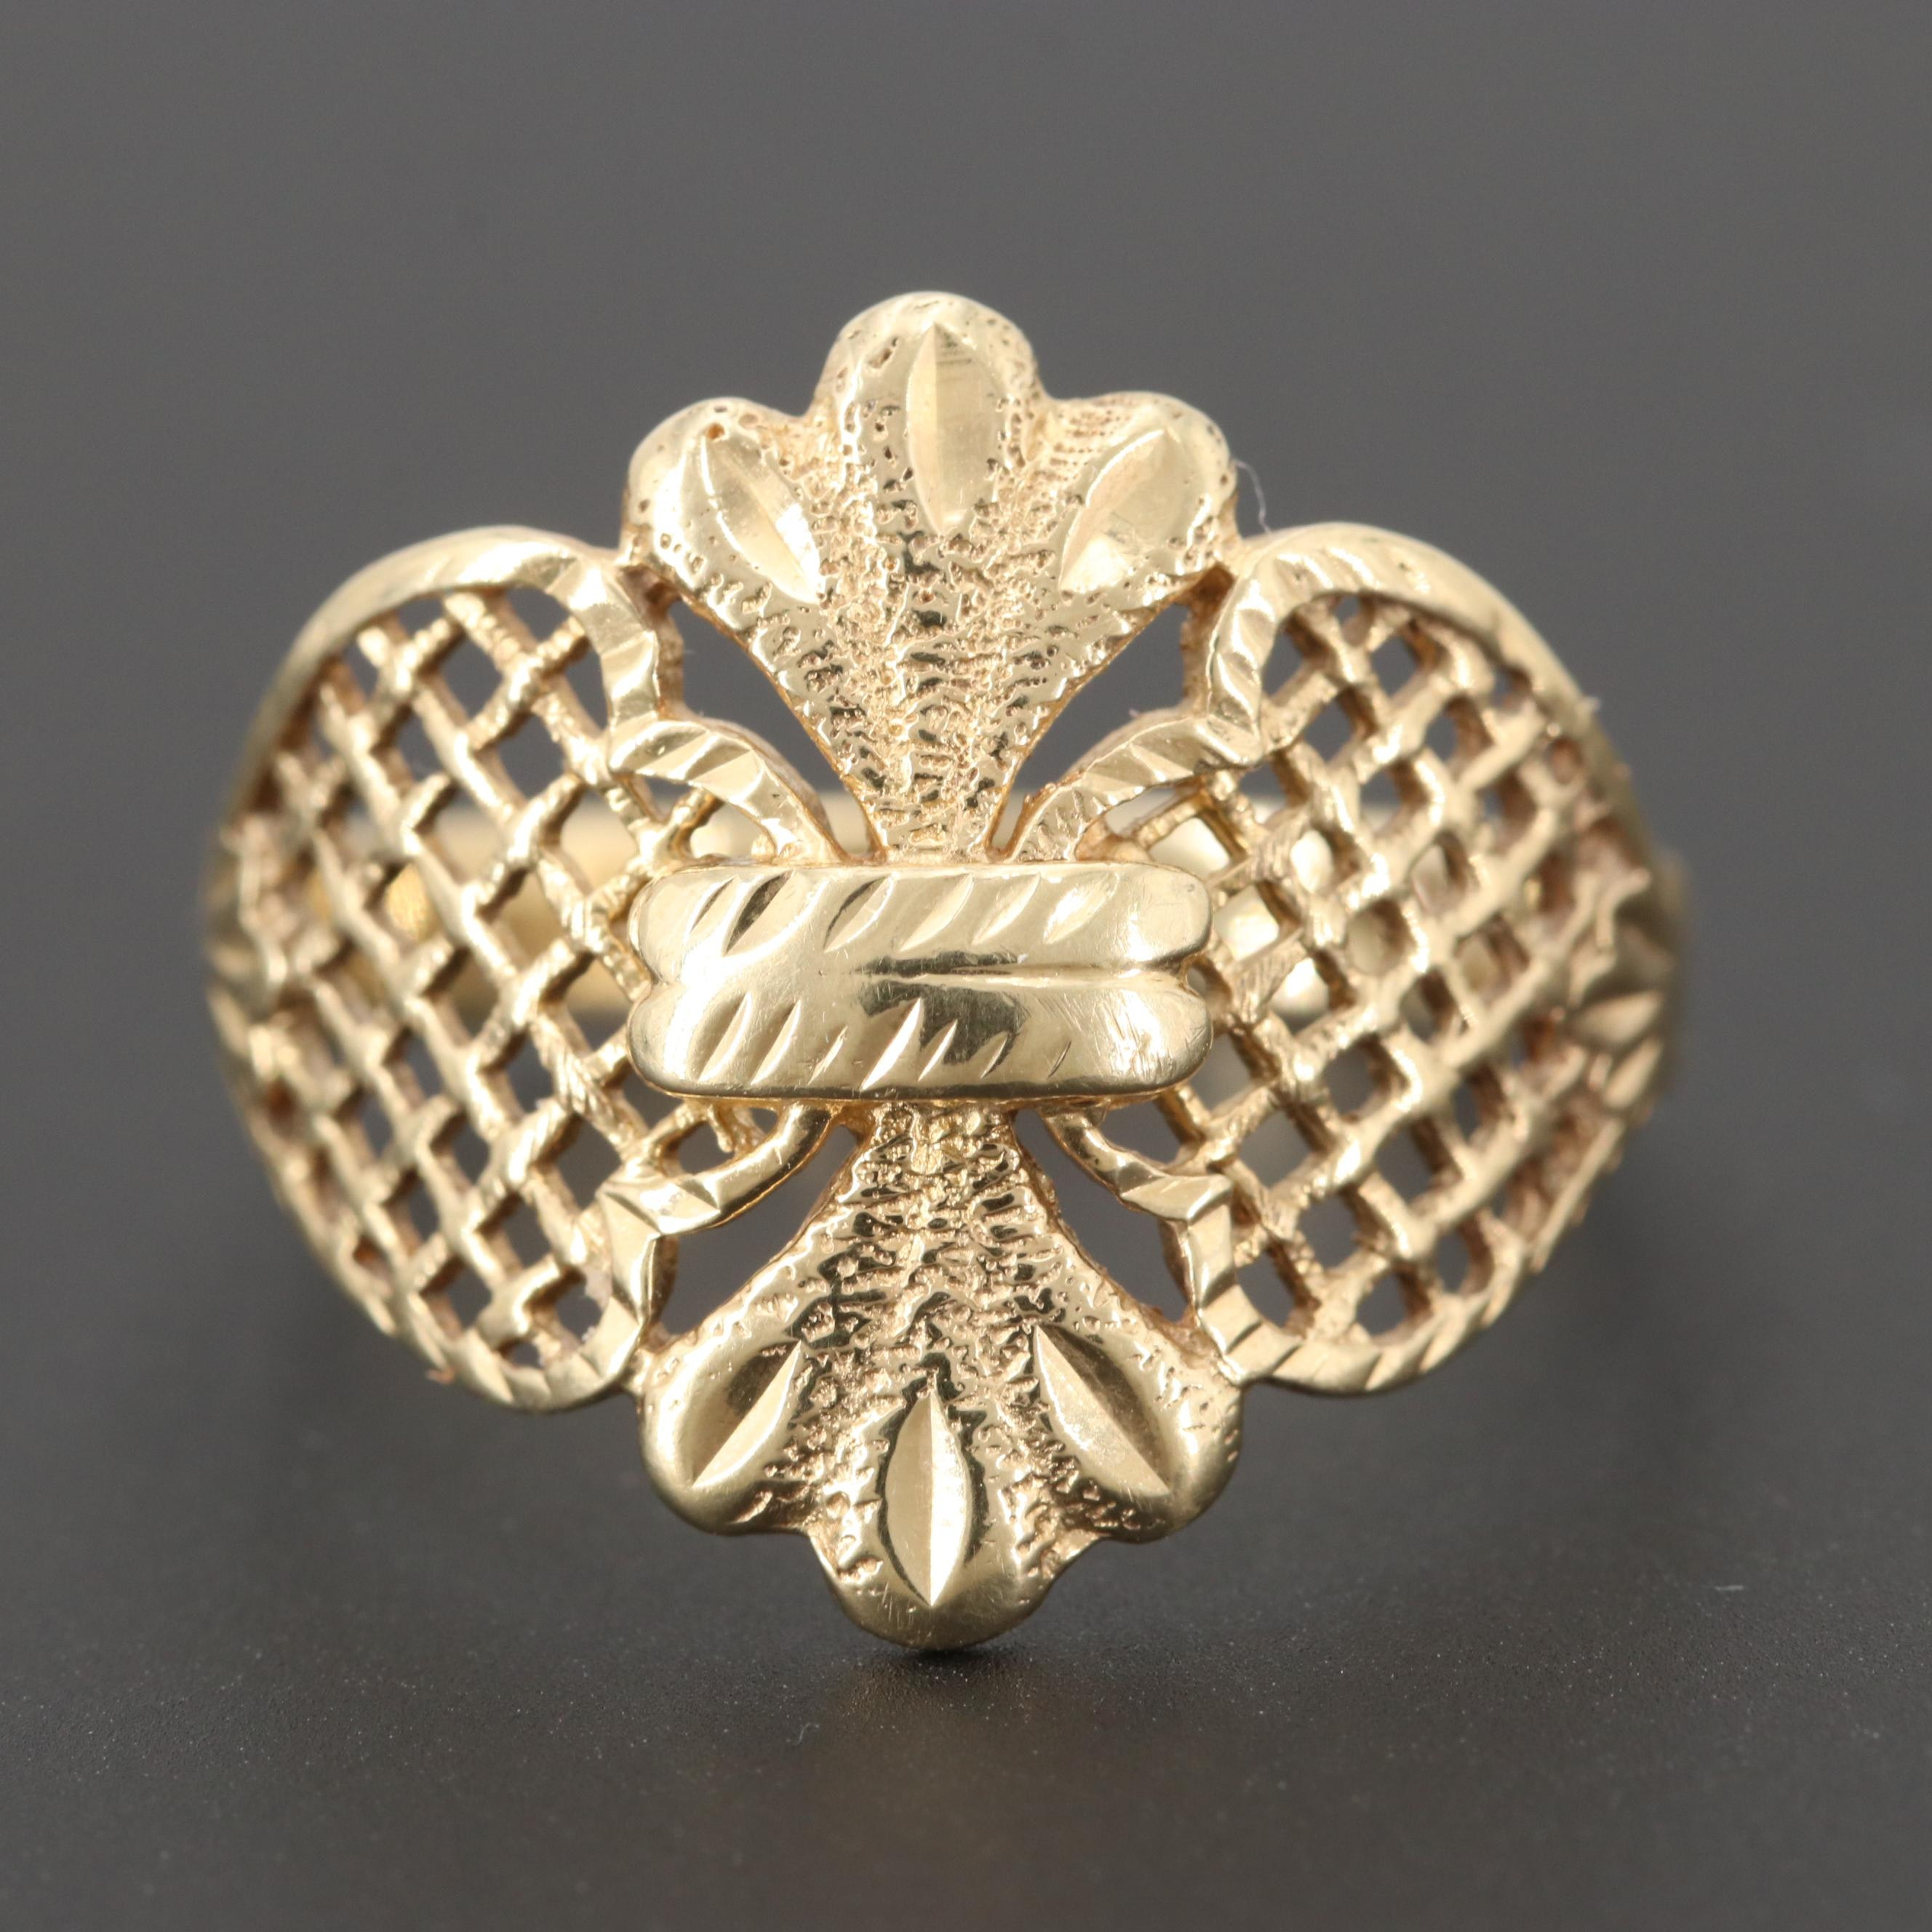 14K Yellow Gold Openwork Design Ring